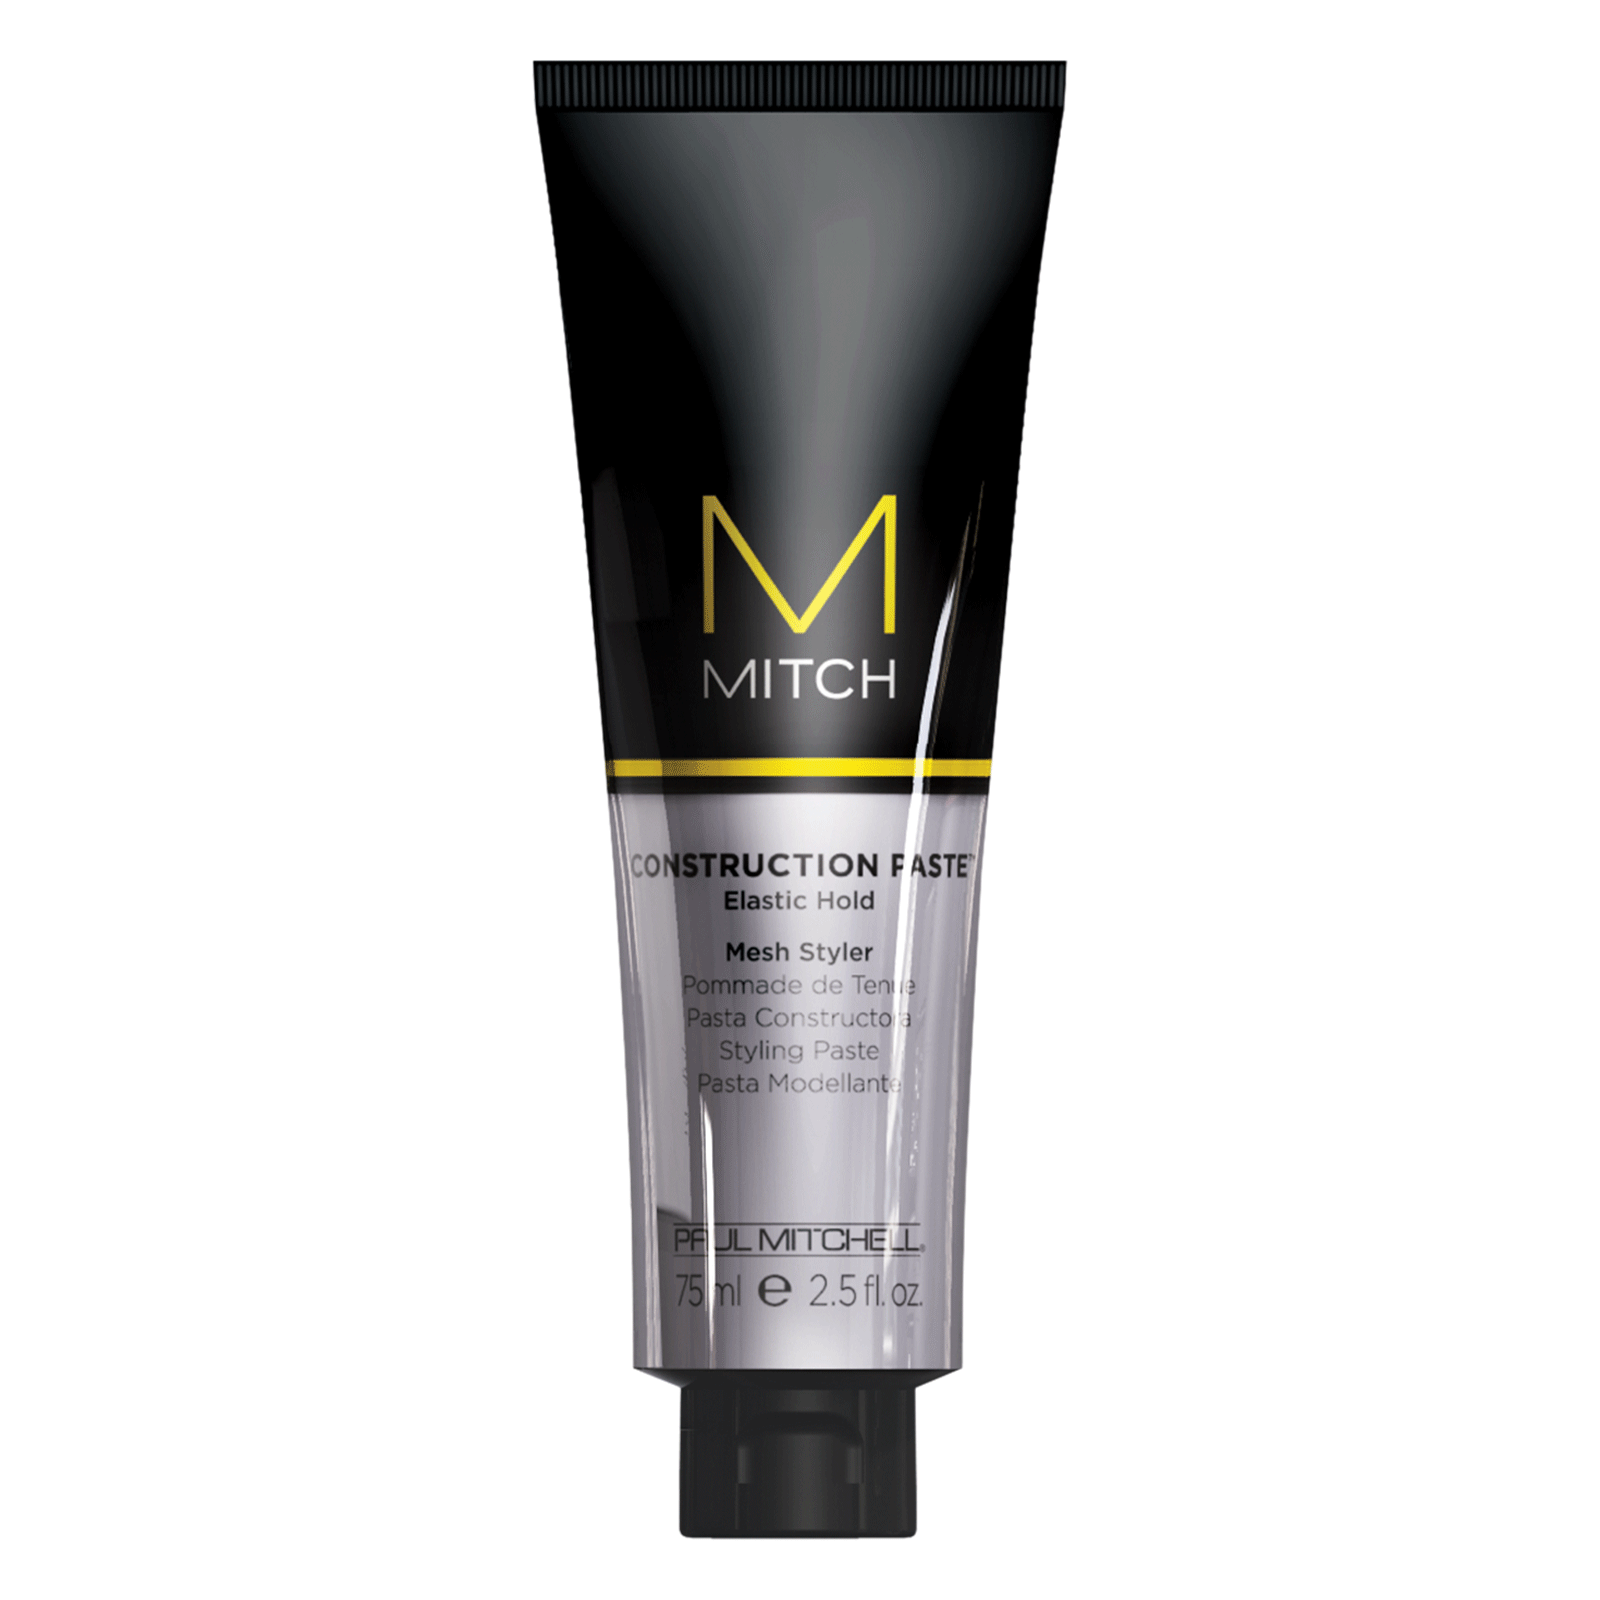 Mitch - Construction Paste Mesh Styler